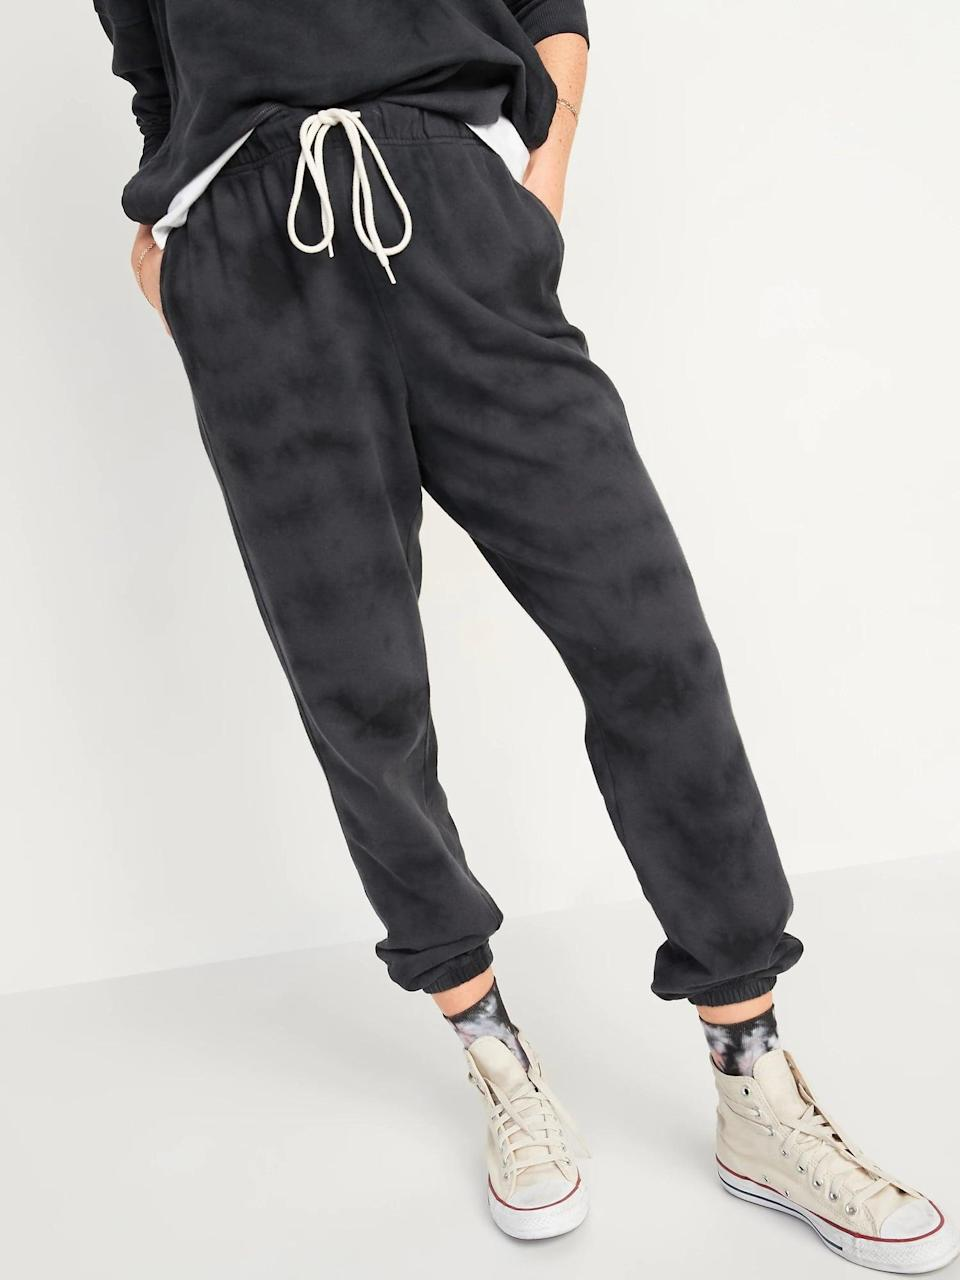 <p>A black-and-gray tonal tie-dye pair of <span>Old Navy Extra High-Waisted Vintage Specially Dyed Sweatpants</span> ($18, originally $35) makes a nice switch up for either solid color.</p>